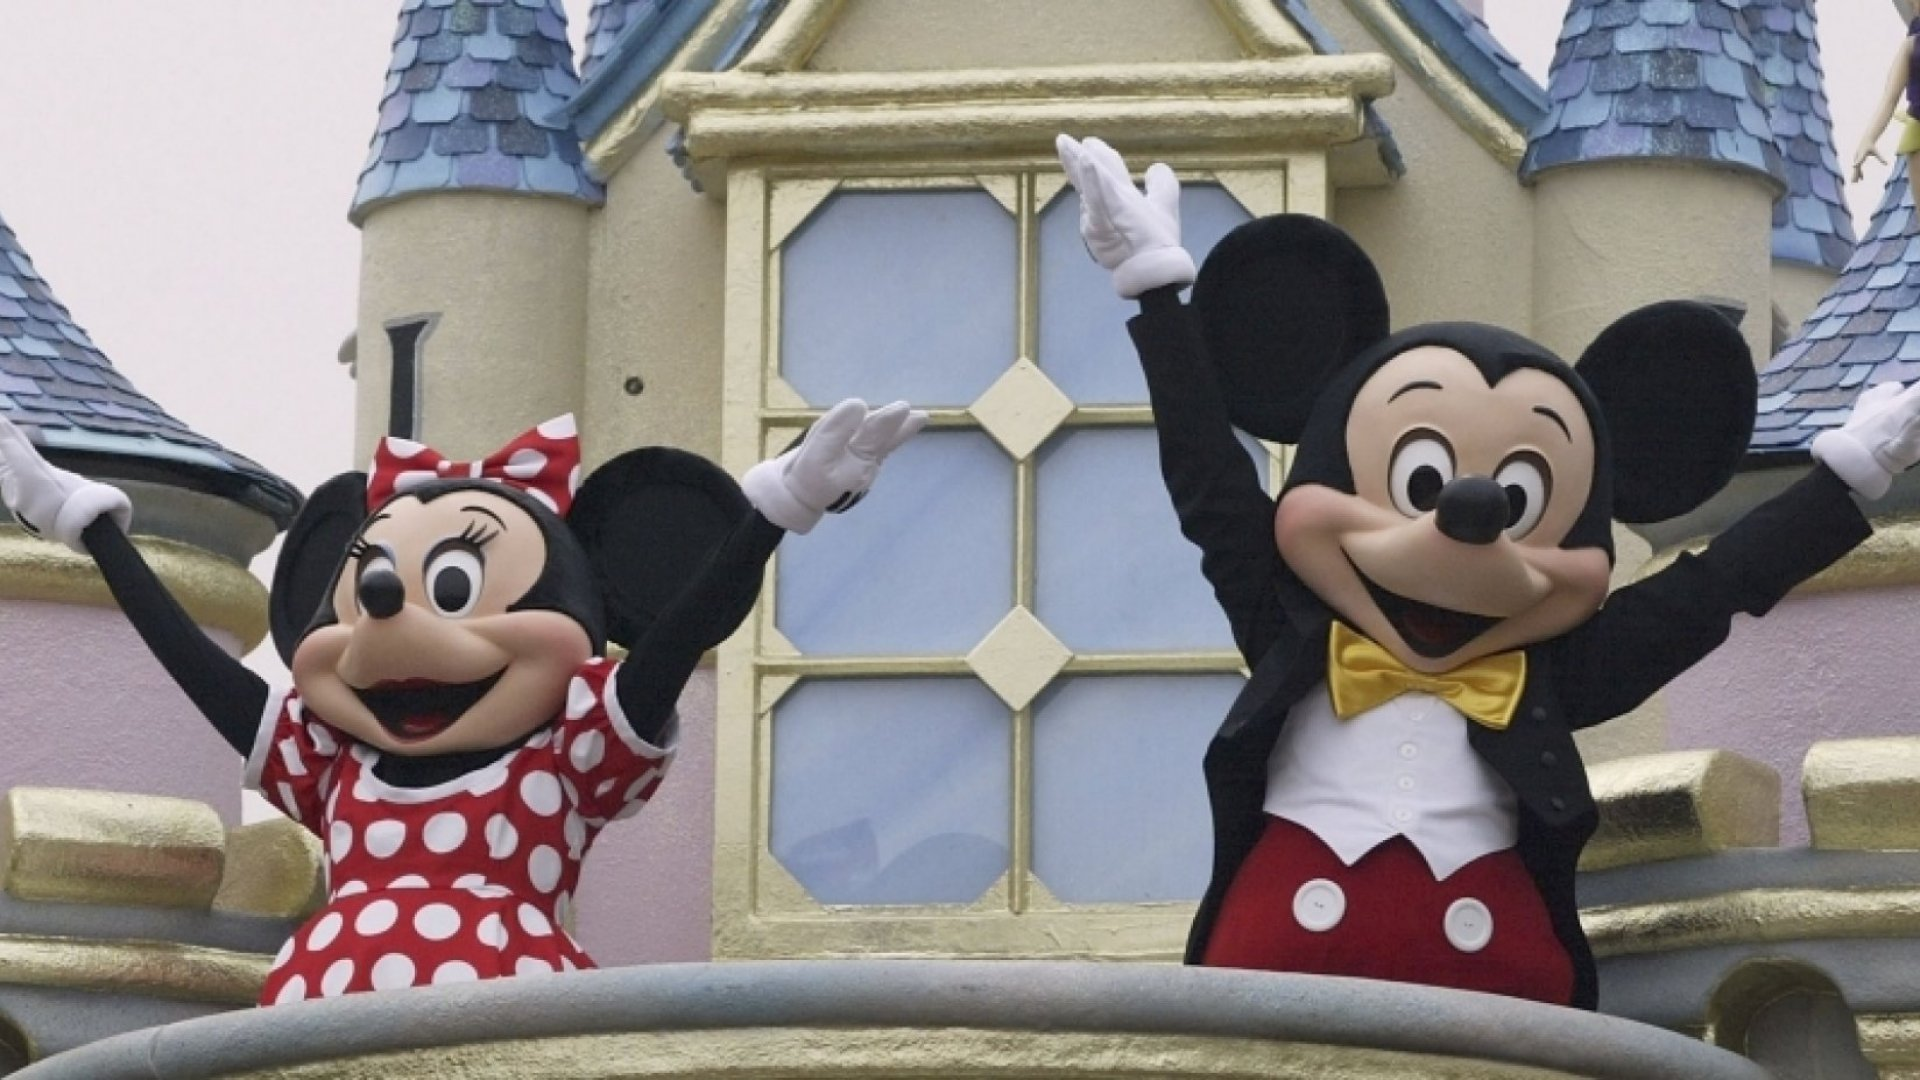 What Can Entrepreneurs Learn From Disneyland?